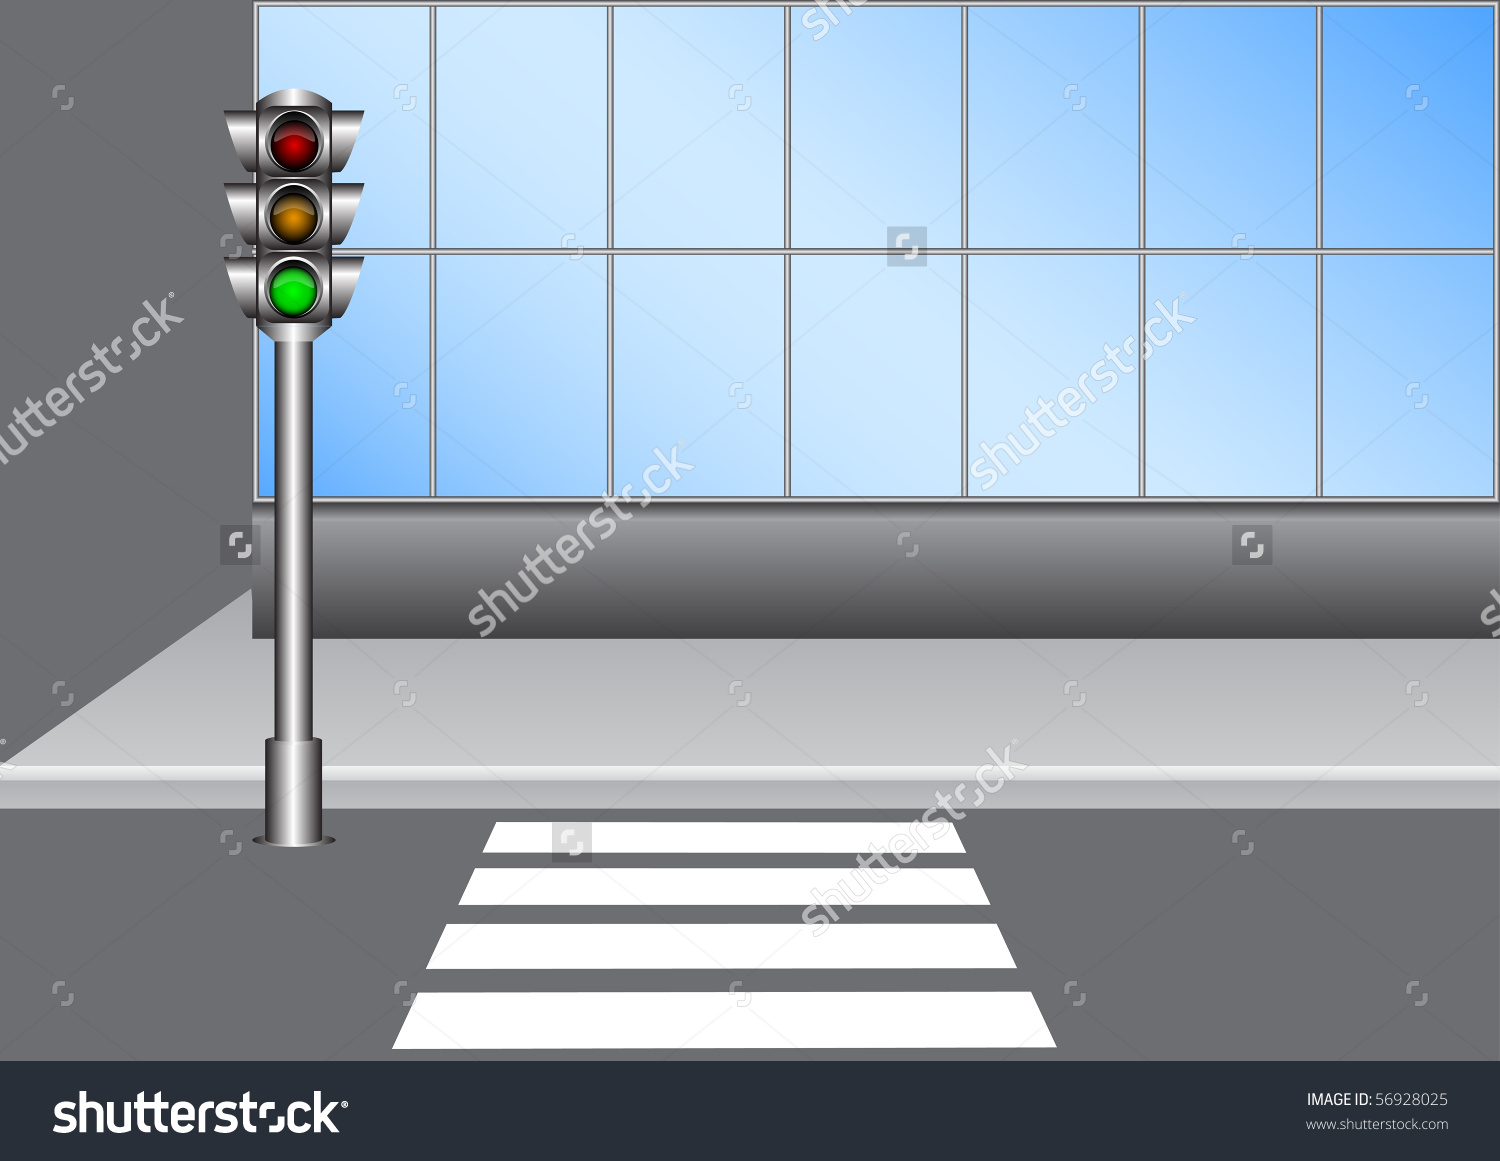 Illustration Urban Traffic Light On Street Stock Vector 56928025.